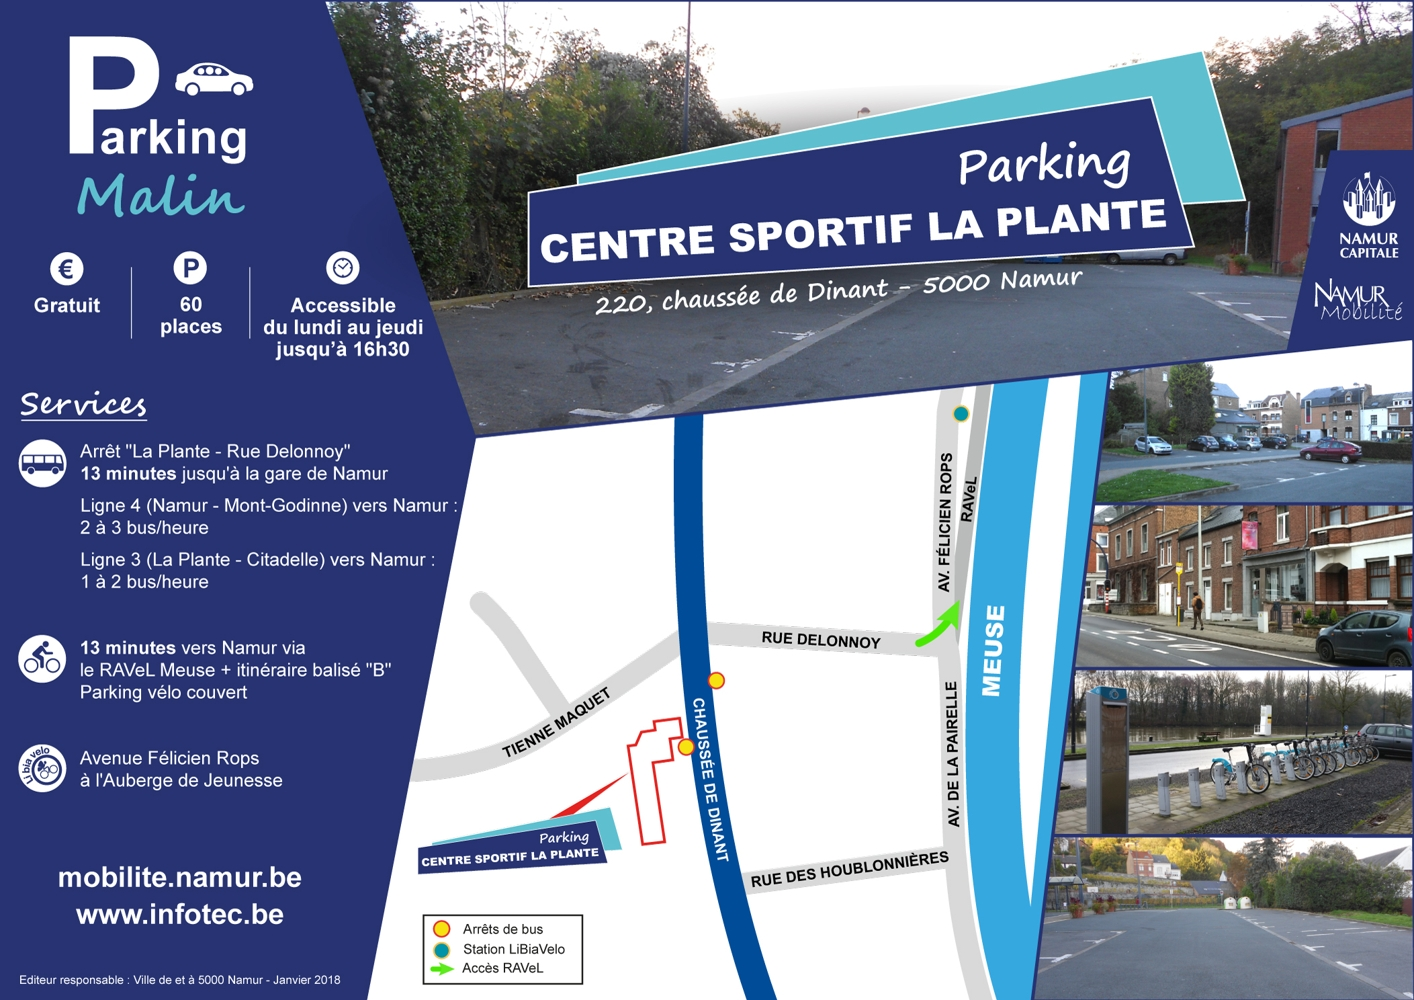 Parking Malin - Centre sportif La Plante